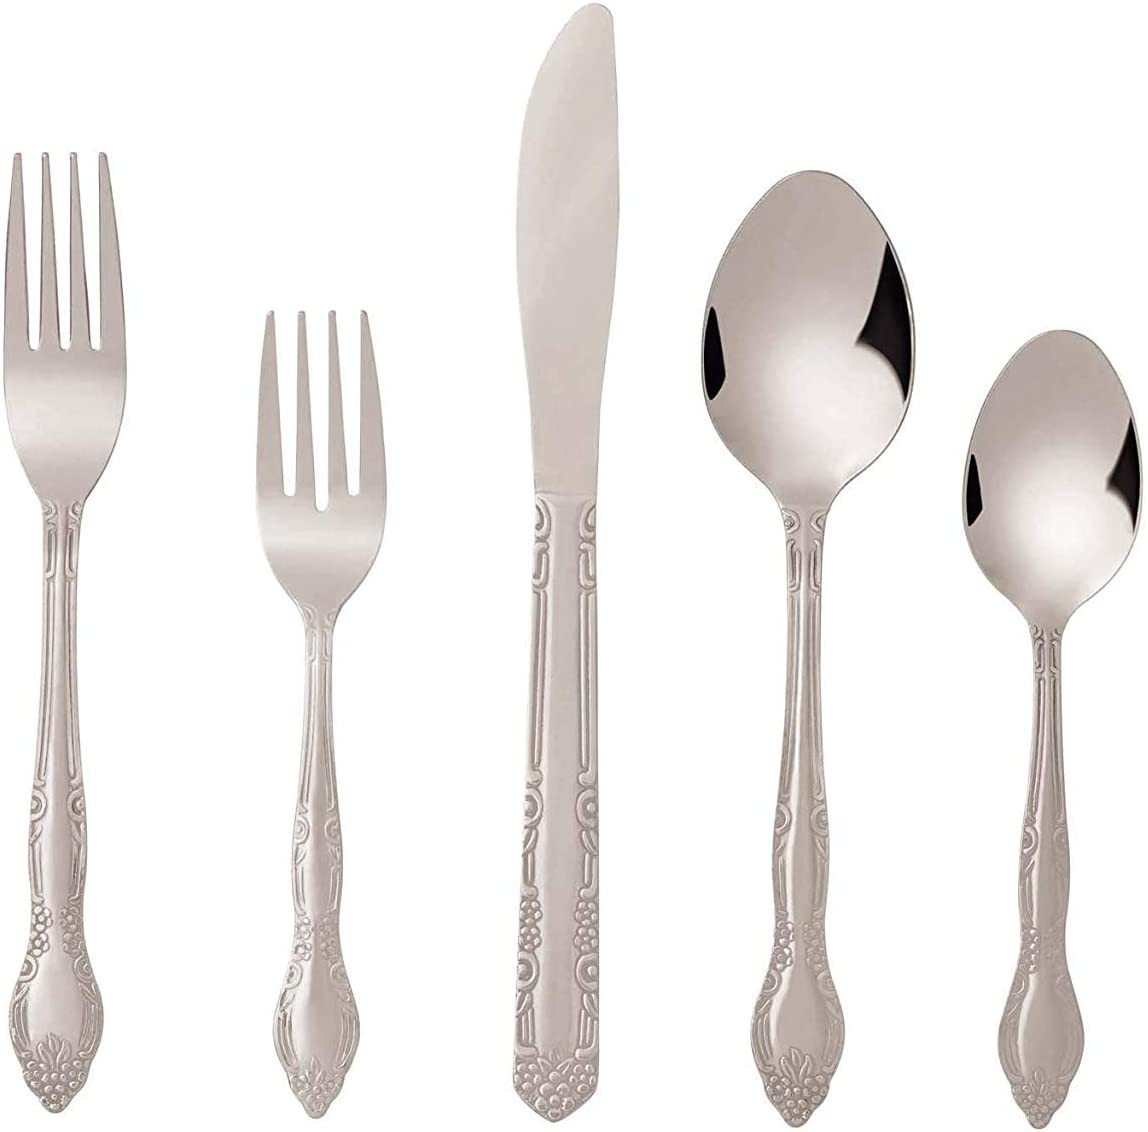 Bon Flora 40-Piece Stainless Steel Flatware Silverware Cutlery Set, Include Knife/Fork/Spoon, Dishwasher Safe, Service for 8